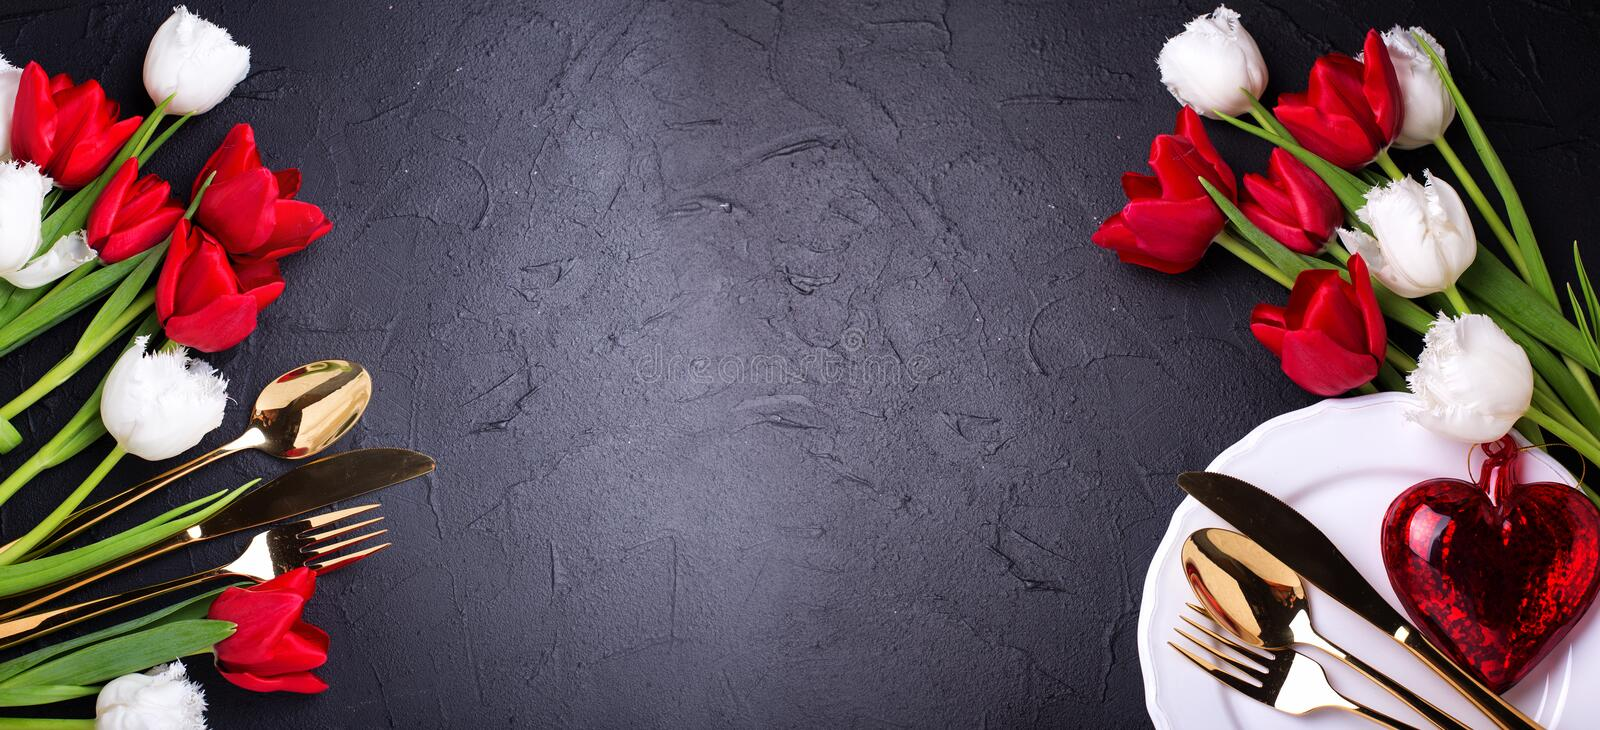 Romantic table setting banner royalty free stock photo